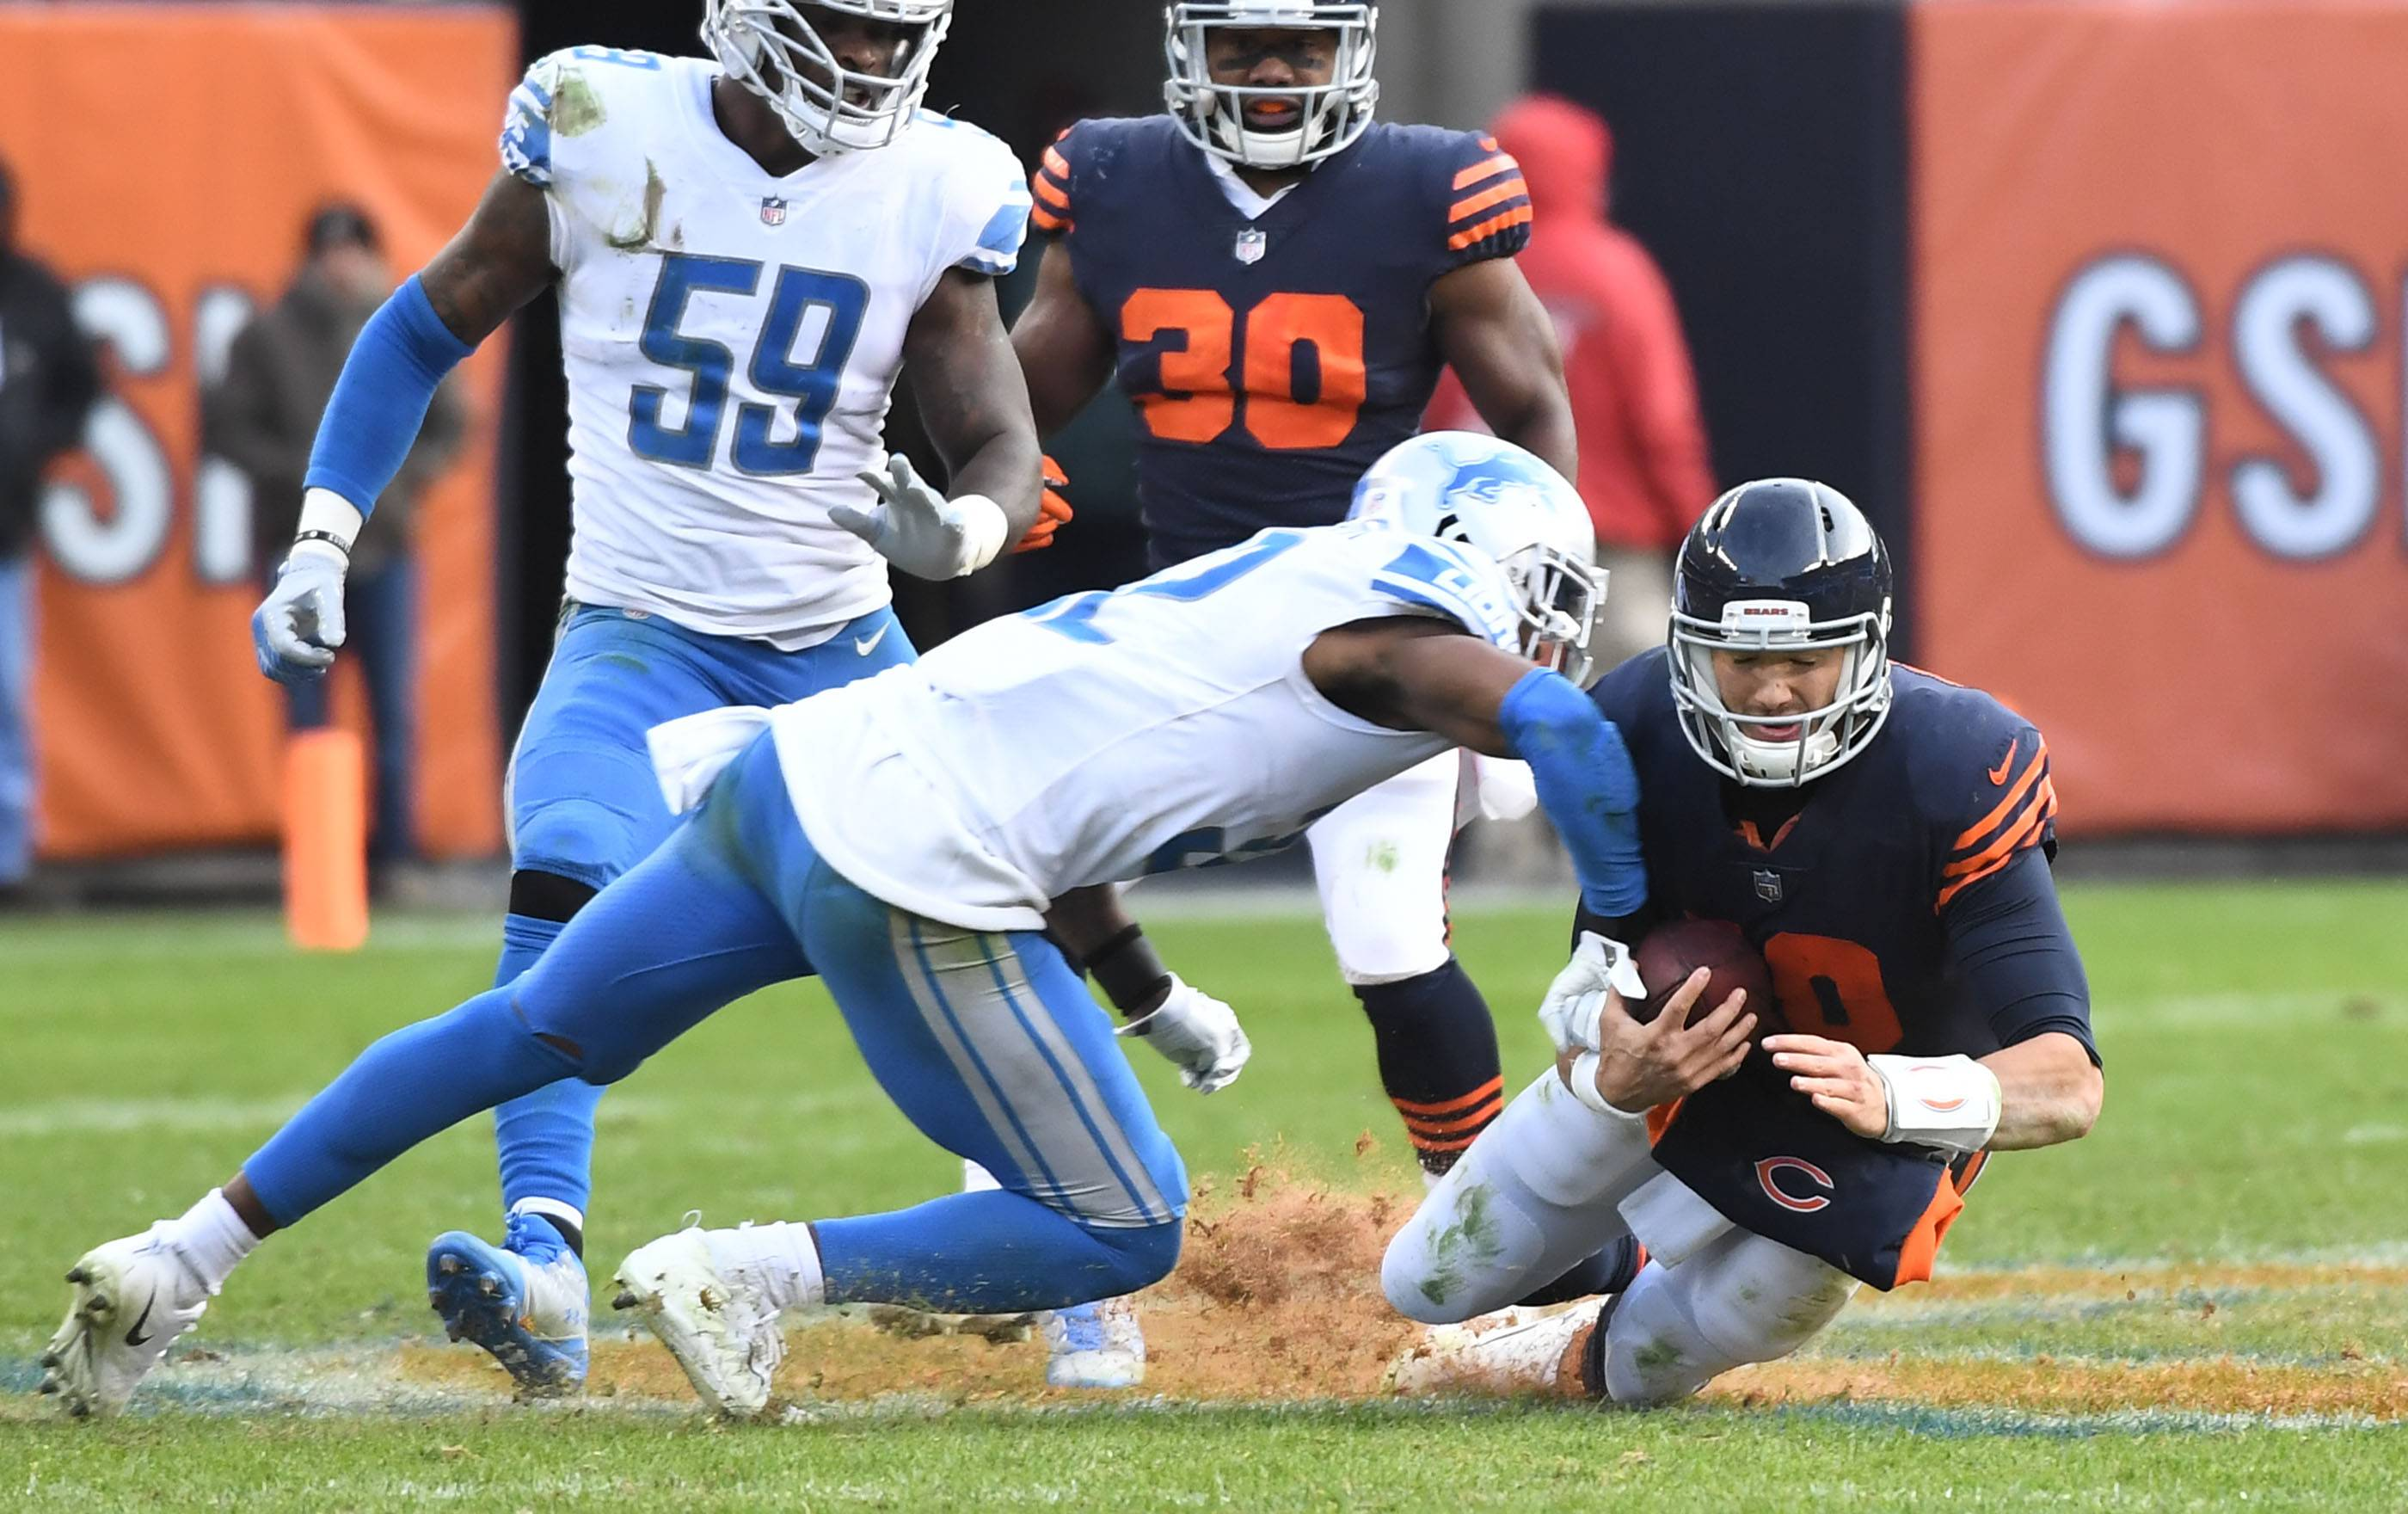 Chicago Bears quarterback Mitchell Trubisky dives for a first down as he takes a hit from Detroit Lions strong safety Tavon Wilson on the last drive of the game Sunday at Soldier Field in Chicago.